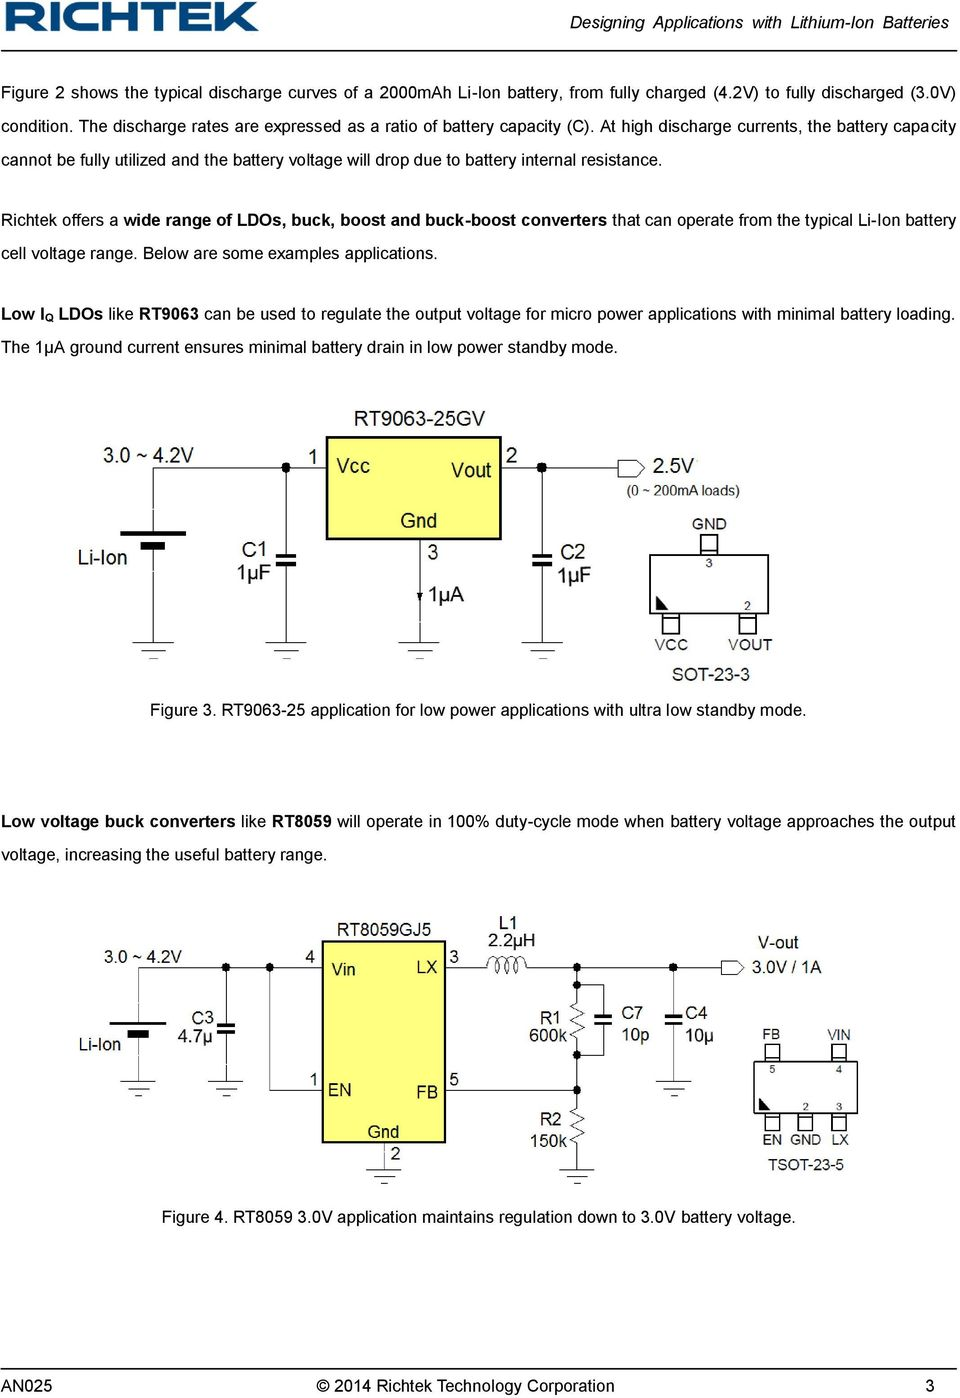 Designing Applications With Lithium Ion Batteries Pdf Battery Overdischarge Cut Off Circuit Electronics Design At High Discharge Currents The Capacity Cannot Be Fully Utilized And Voltage